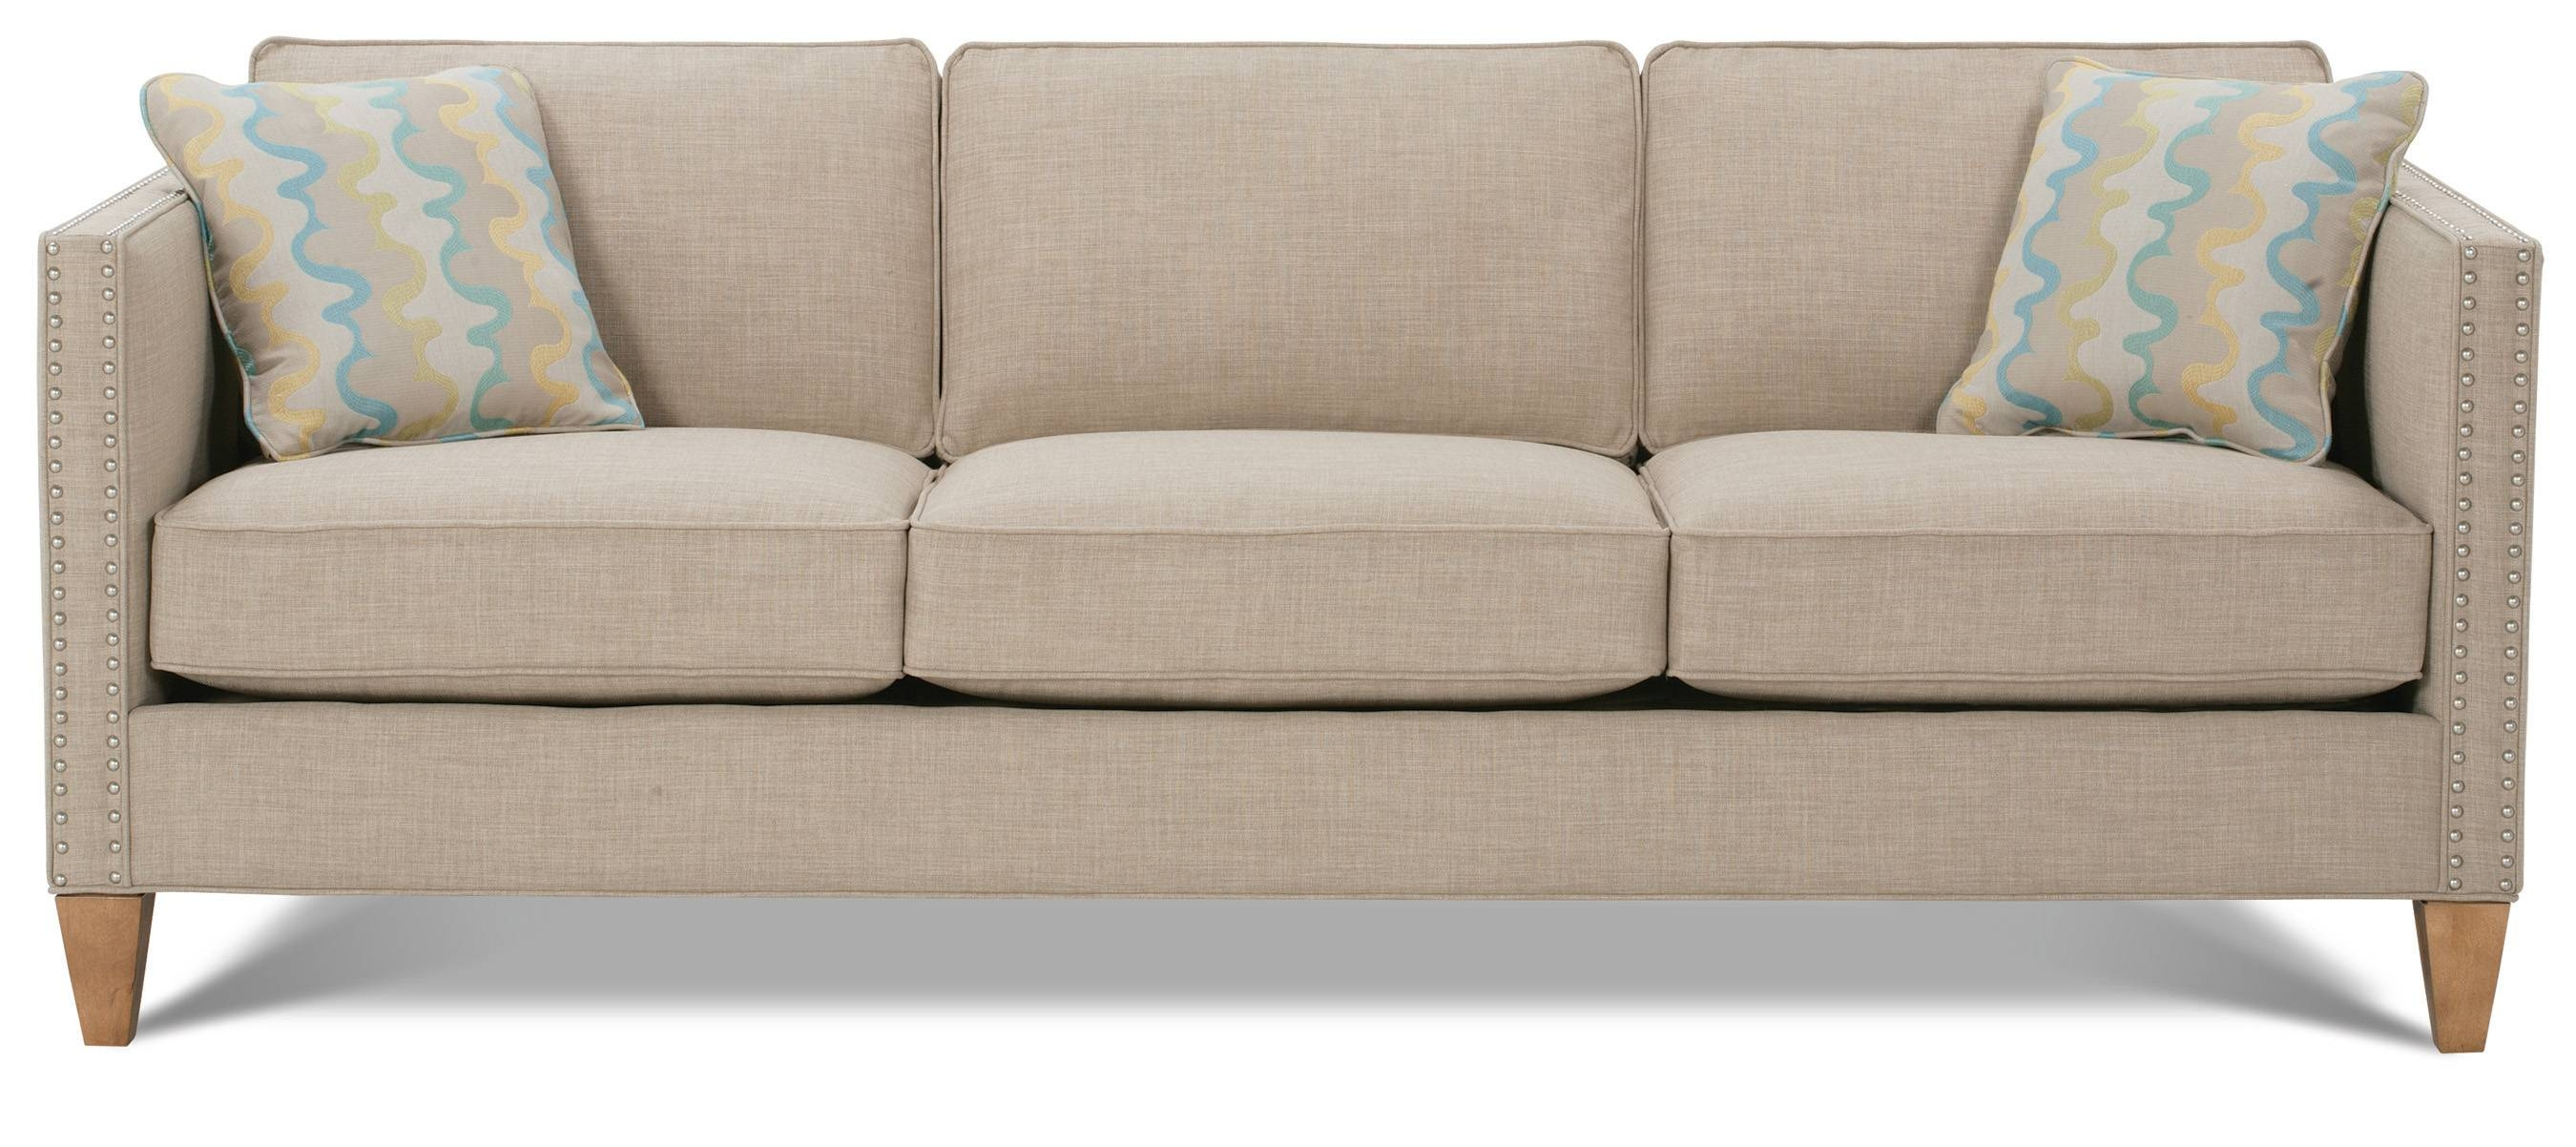 Why Your Home Need A Three Seater Sofa | All White Background inside Three Seater Sofas (Image 29 of 30)